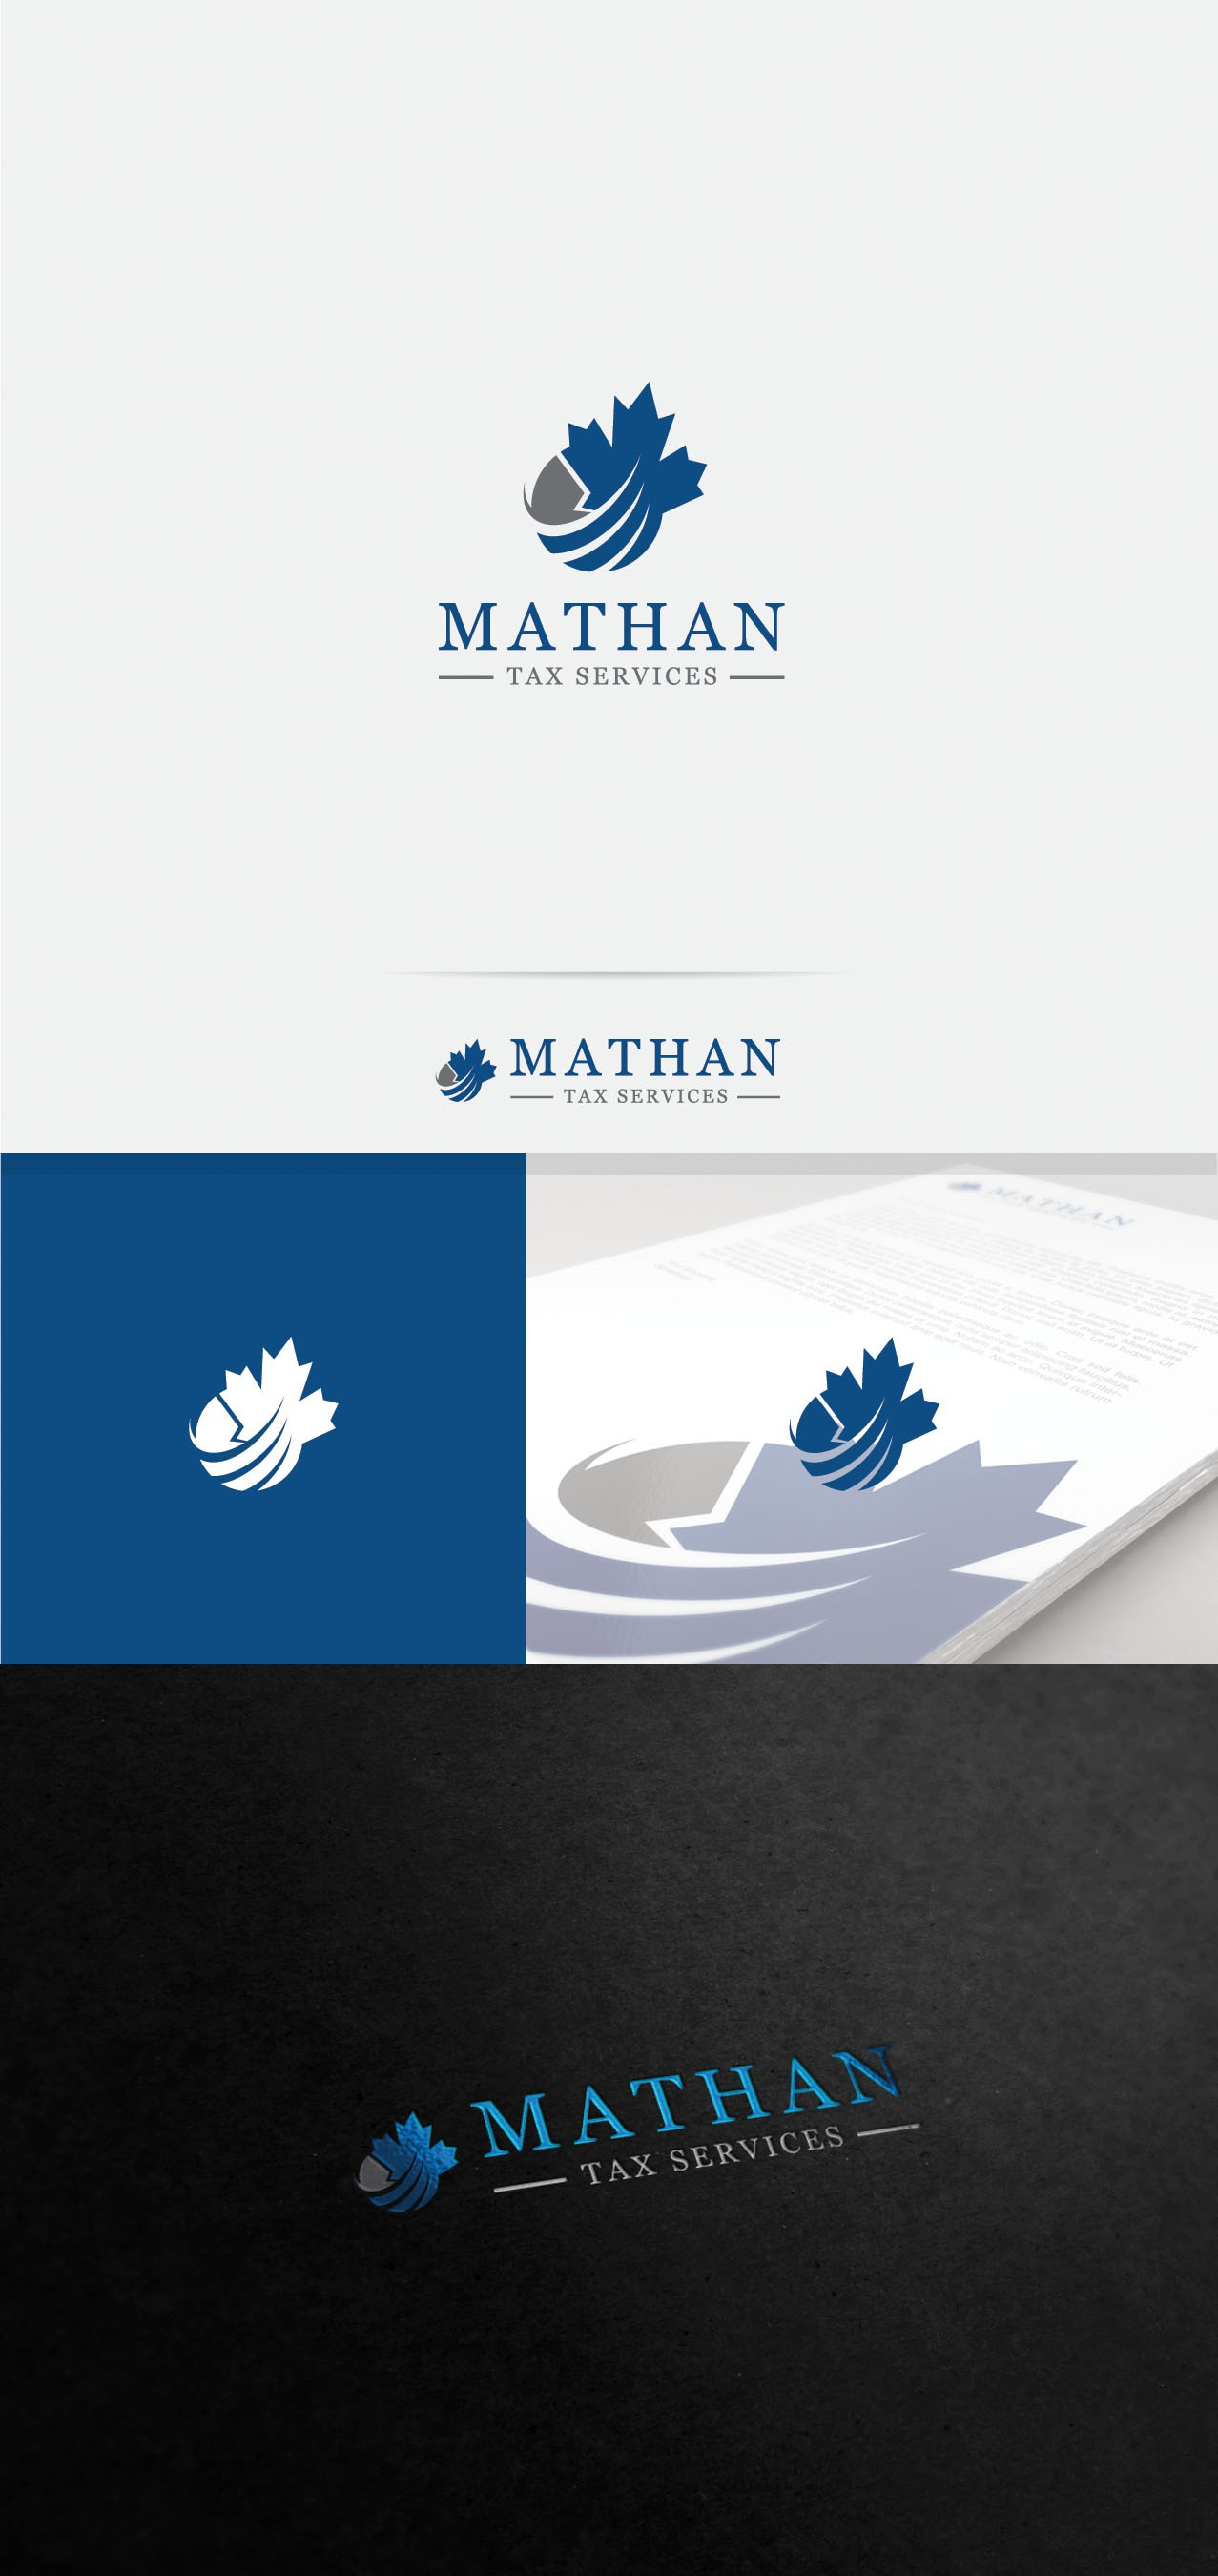 Create a logo for a longstanding Canadian accounting company - Mathan Tax Services